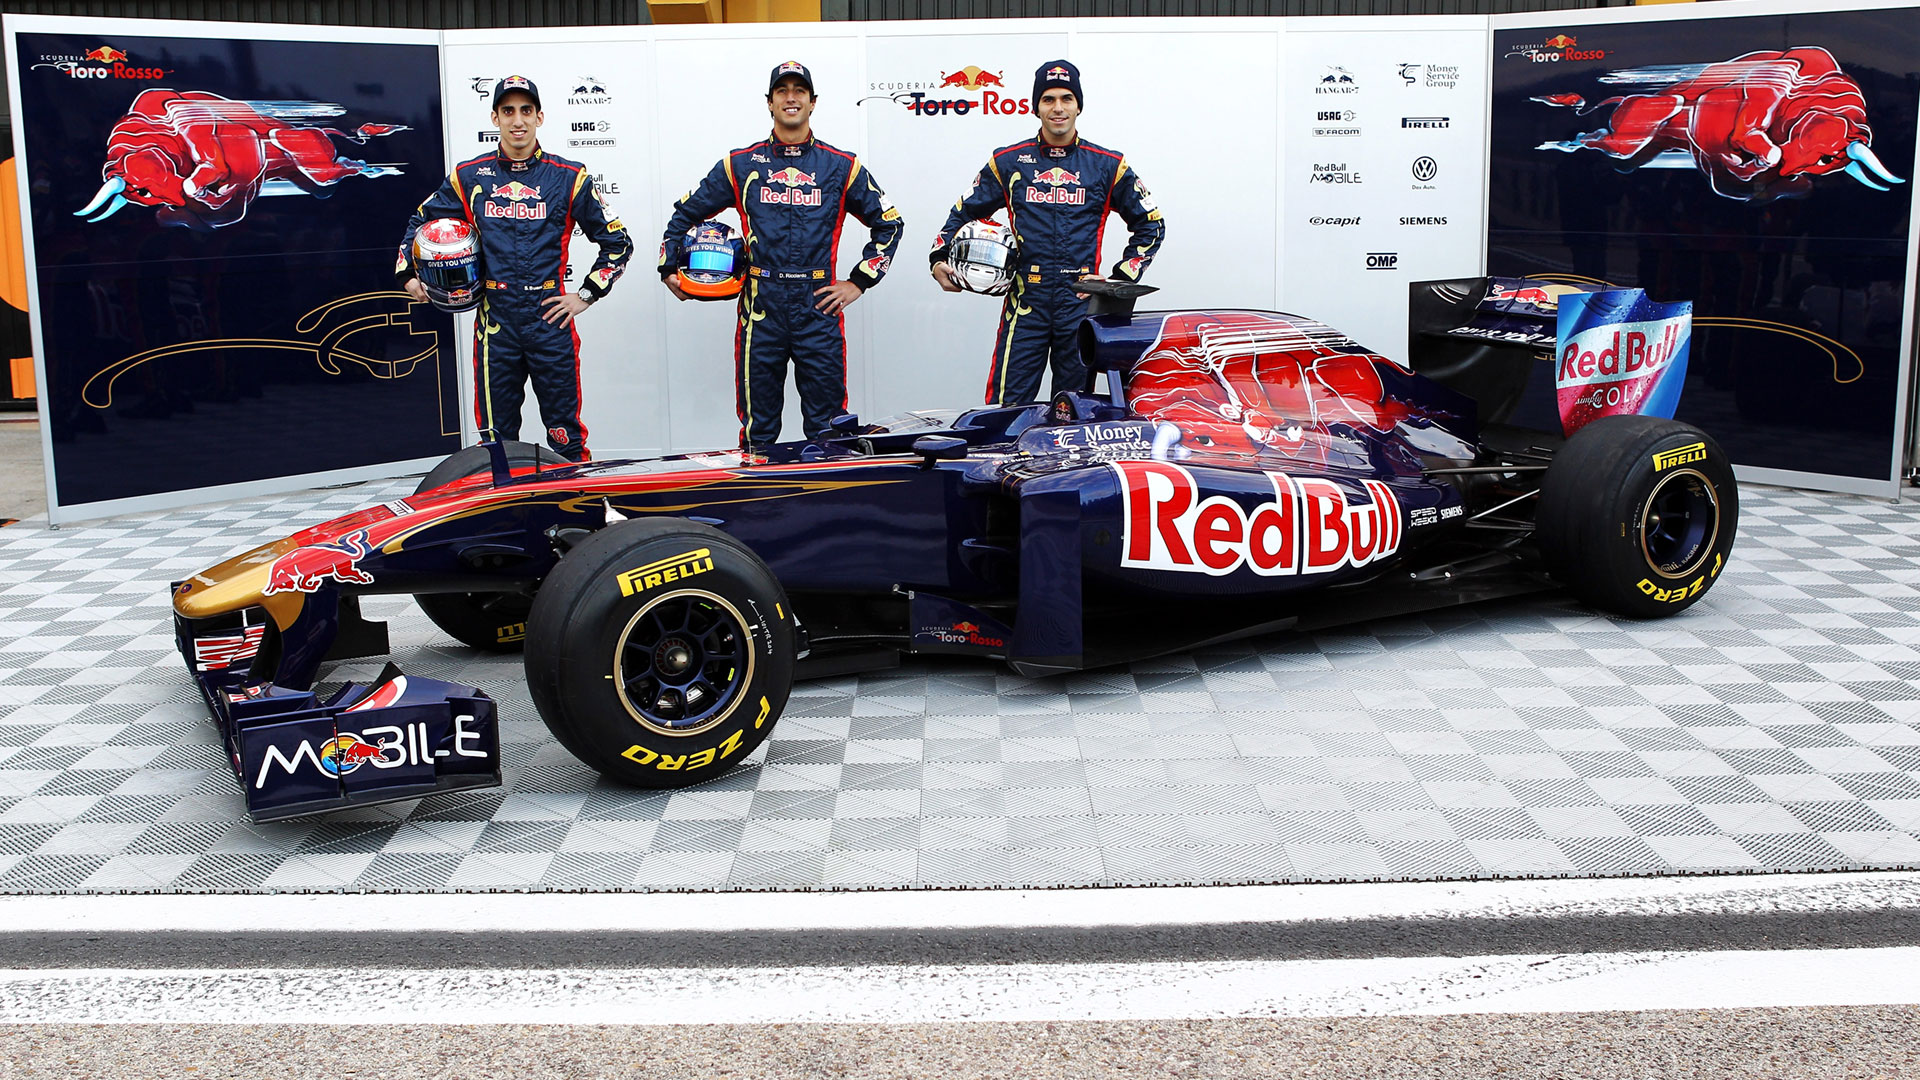 red bull str6 - photo #15